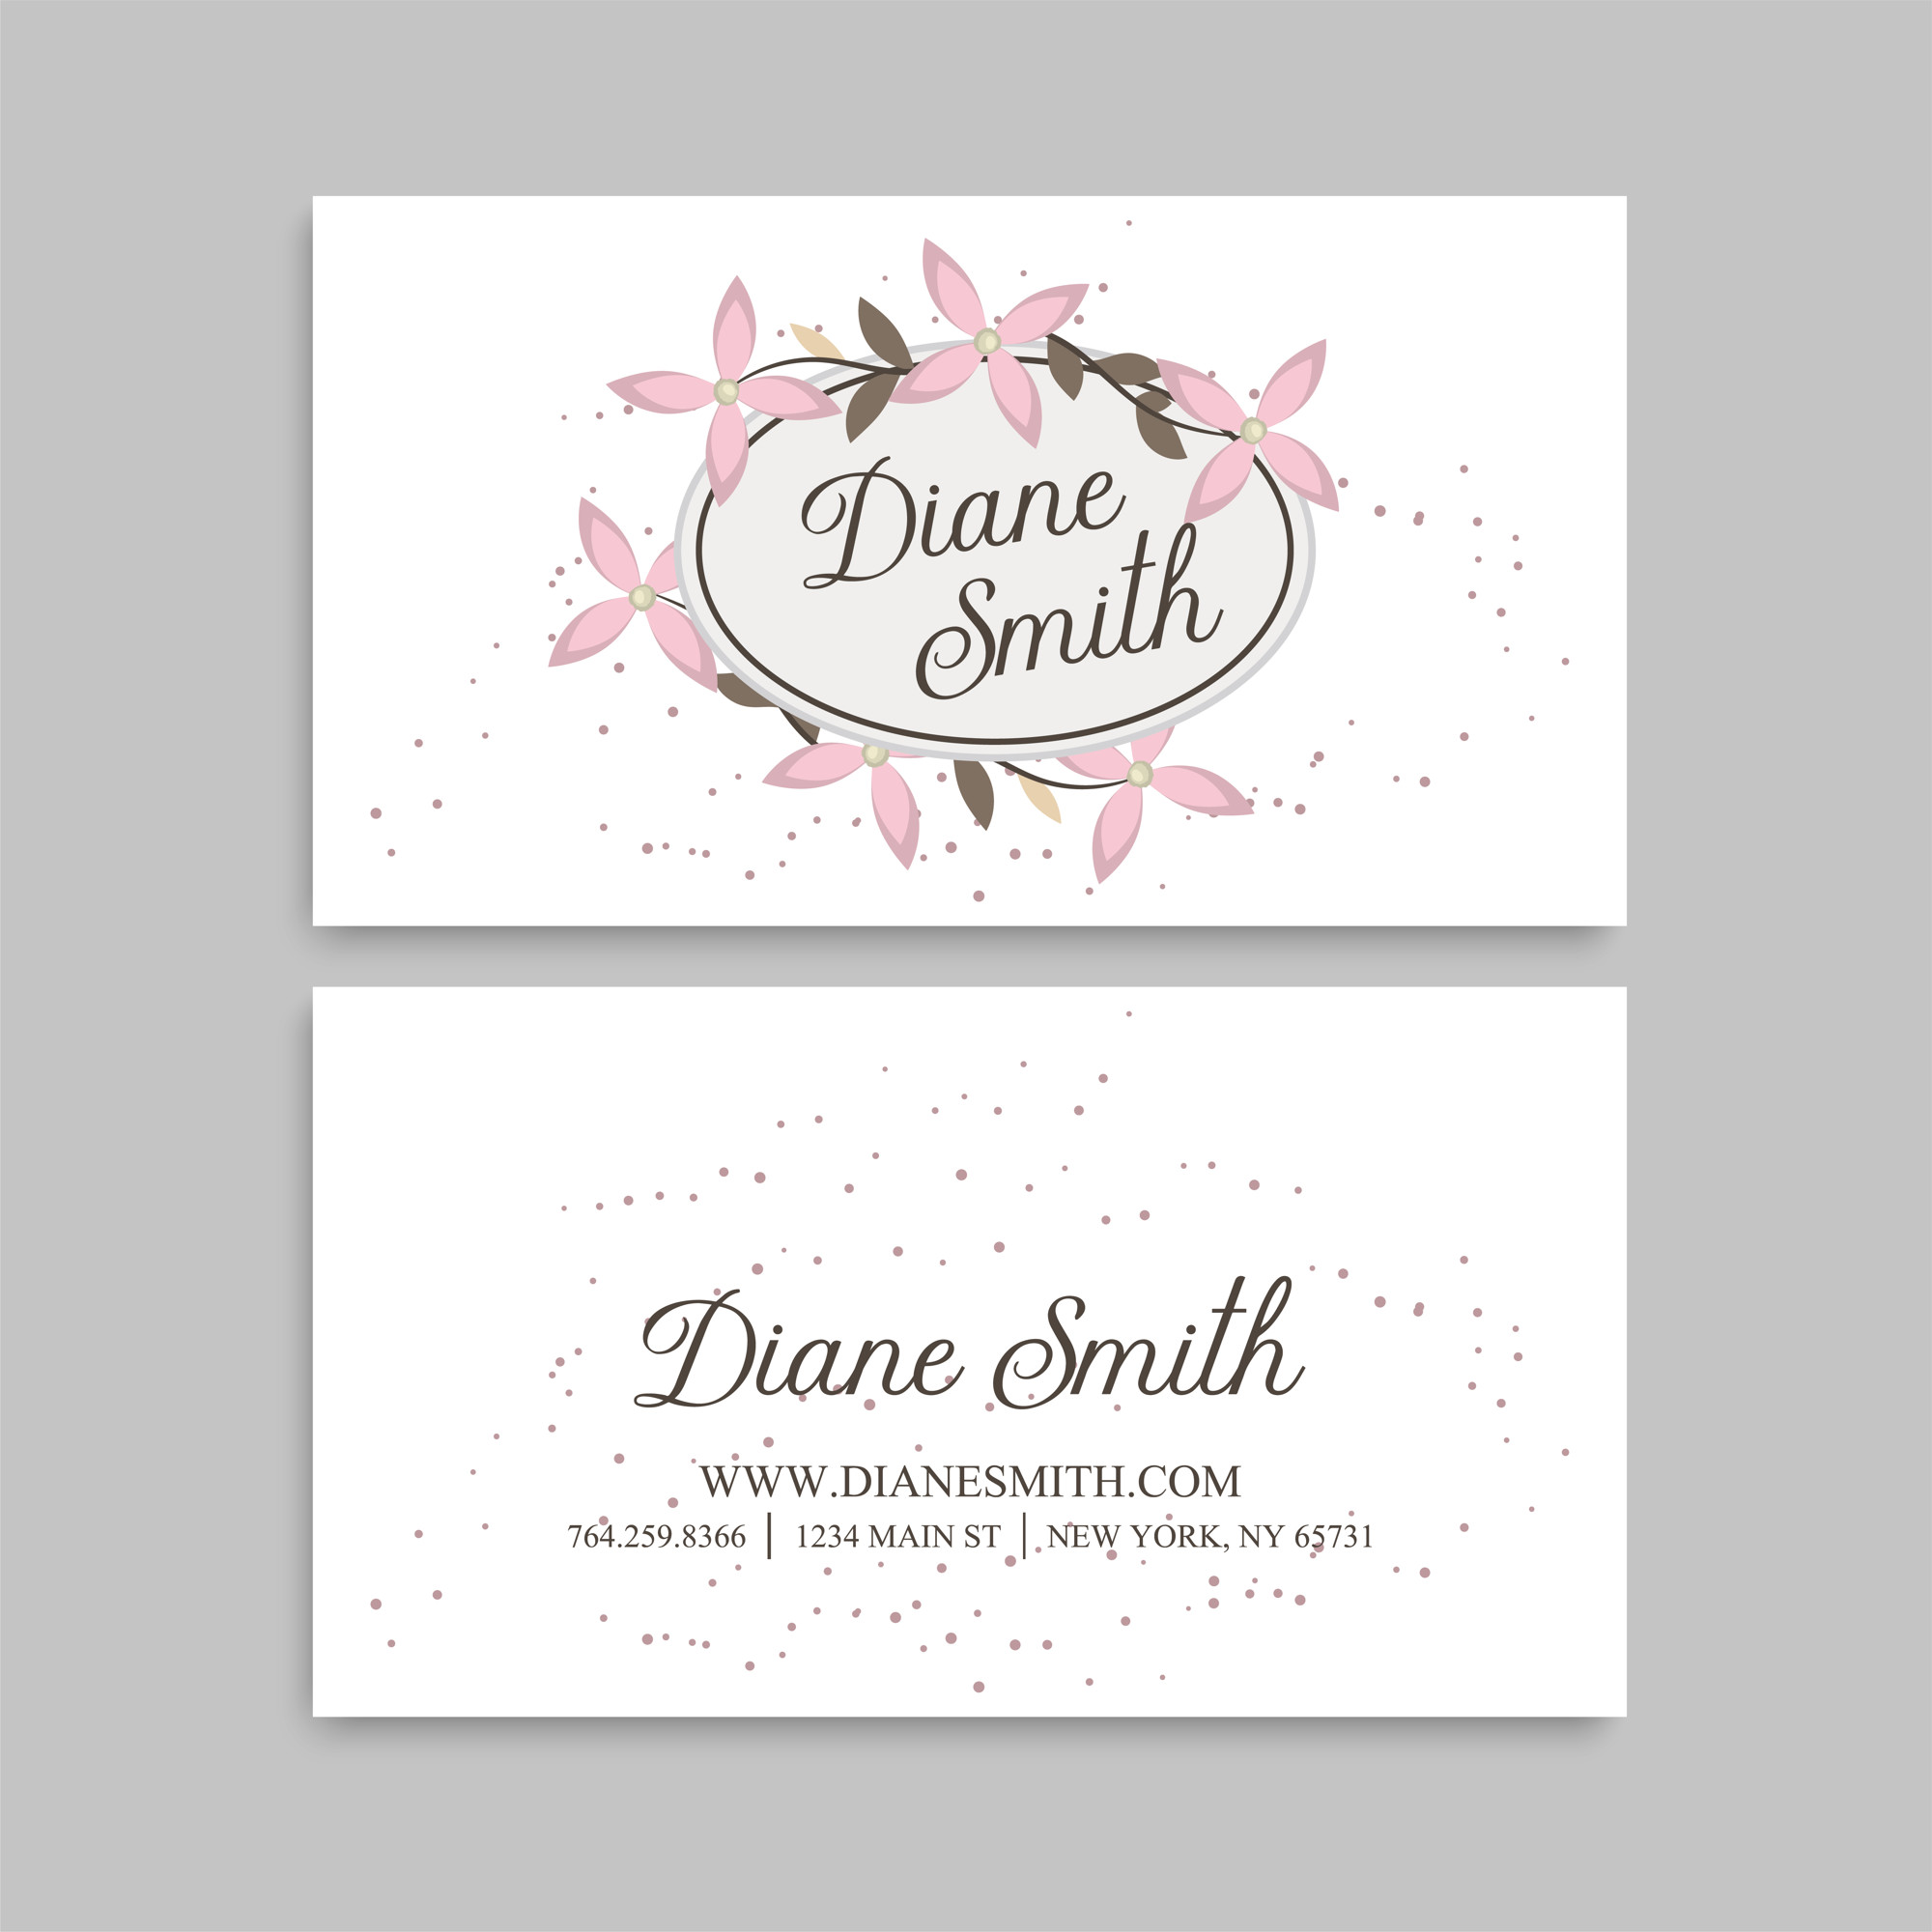 New graphics vectors 225300 files in eps format cute floral pattern business card name card design template friedricerecipe Choice Image